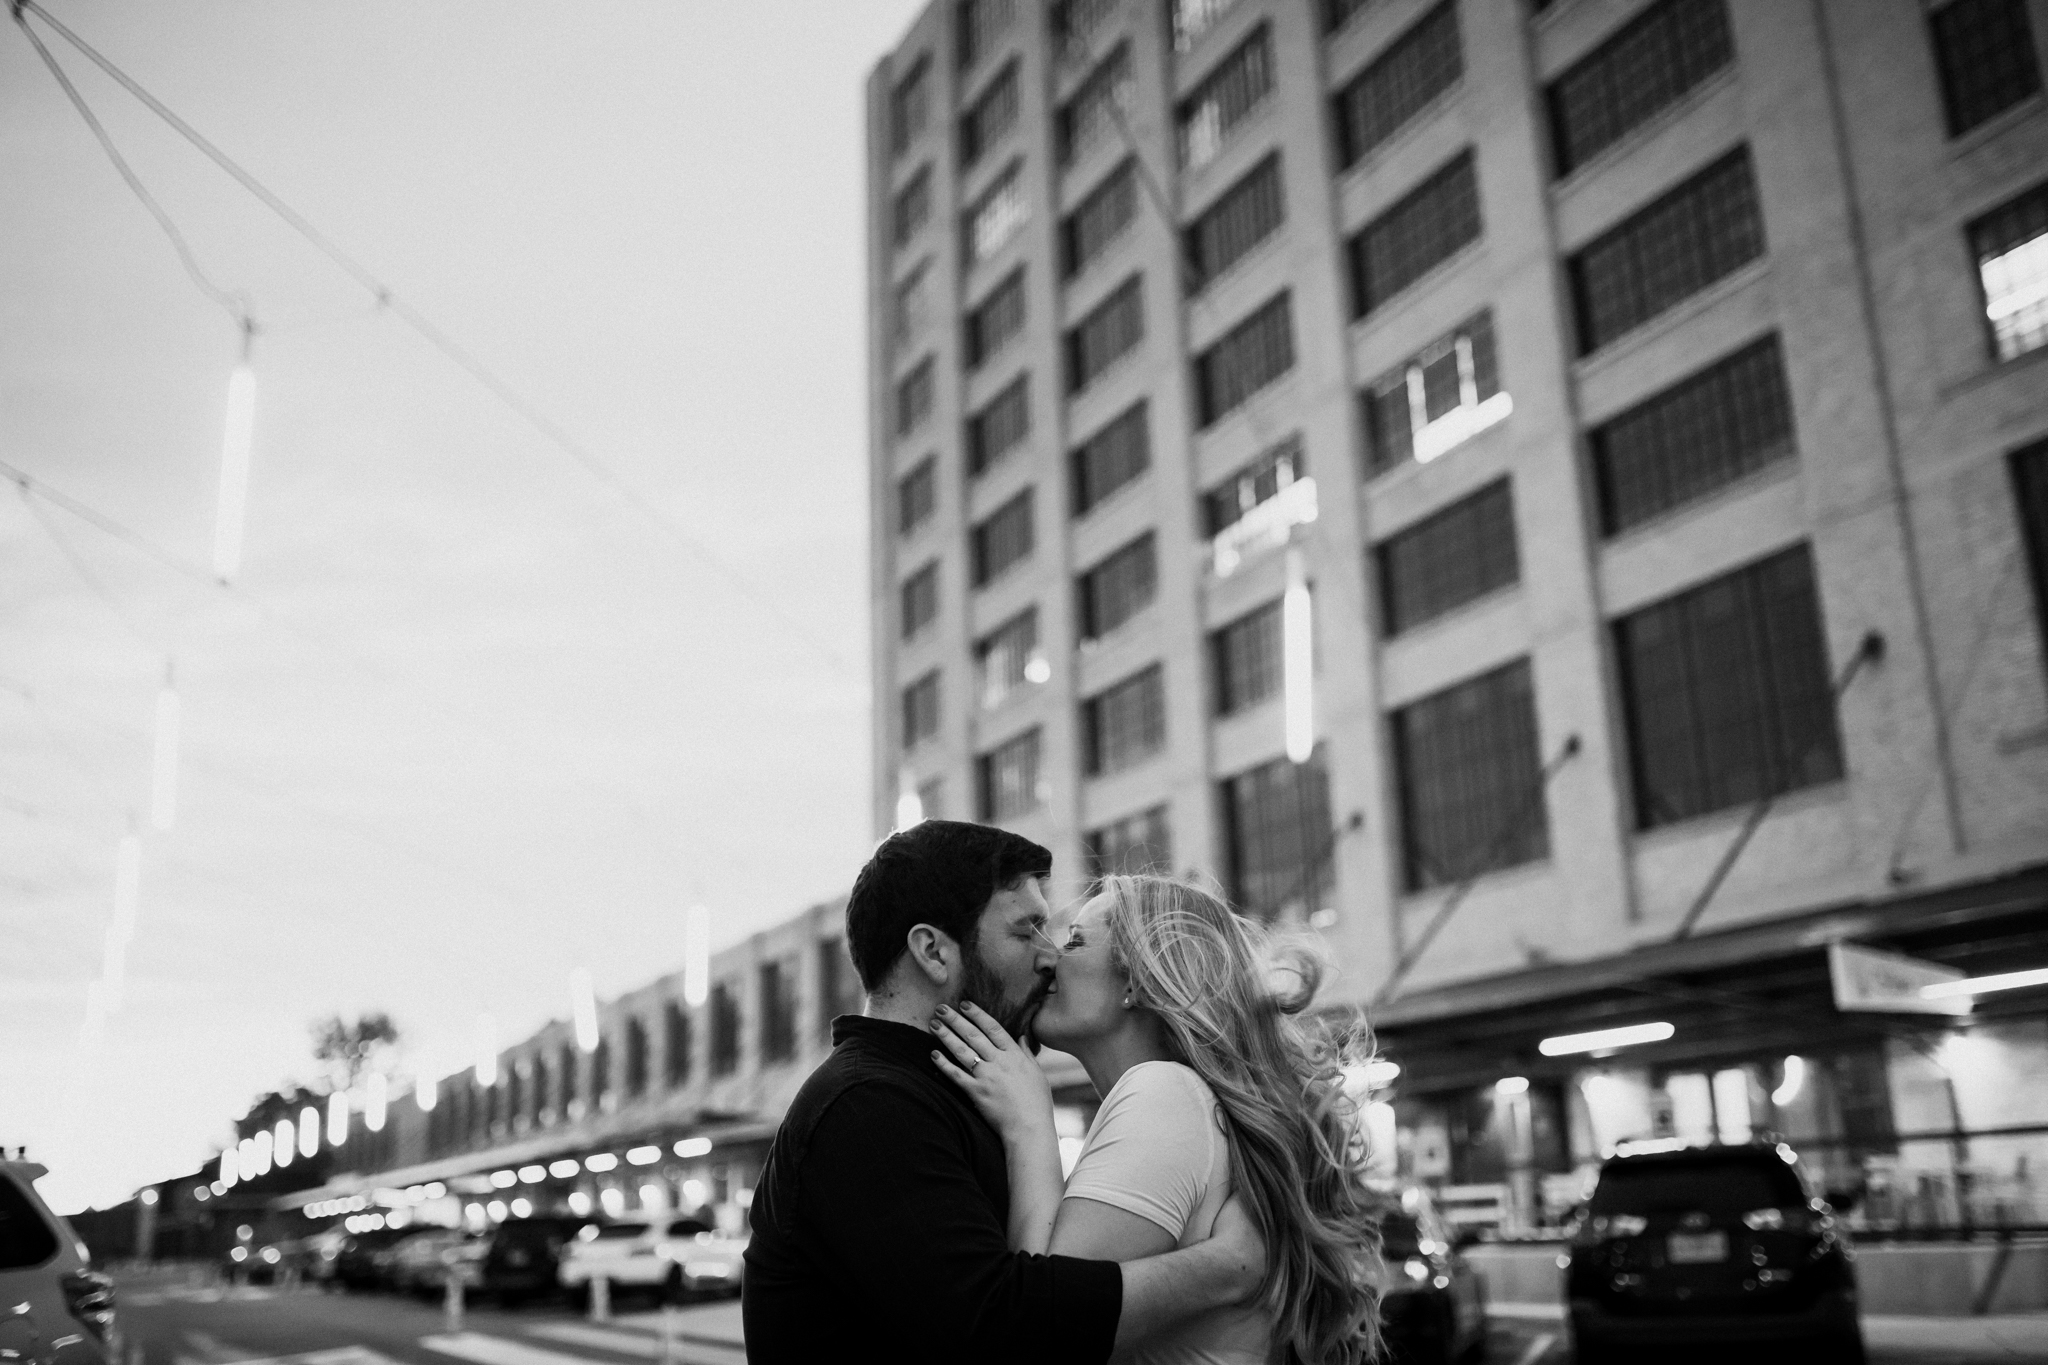 wiseacre-brewing-wedding-photographer-the-warmth-around-you-cassie-cook-photography (61 of 64).jpg